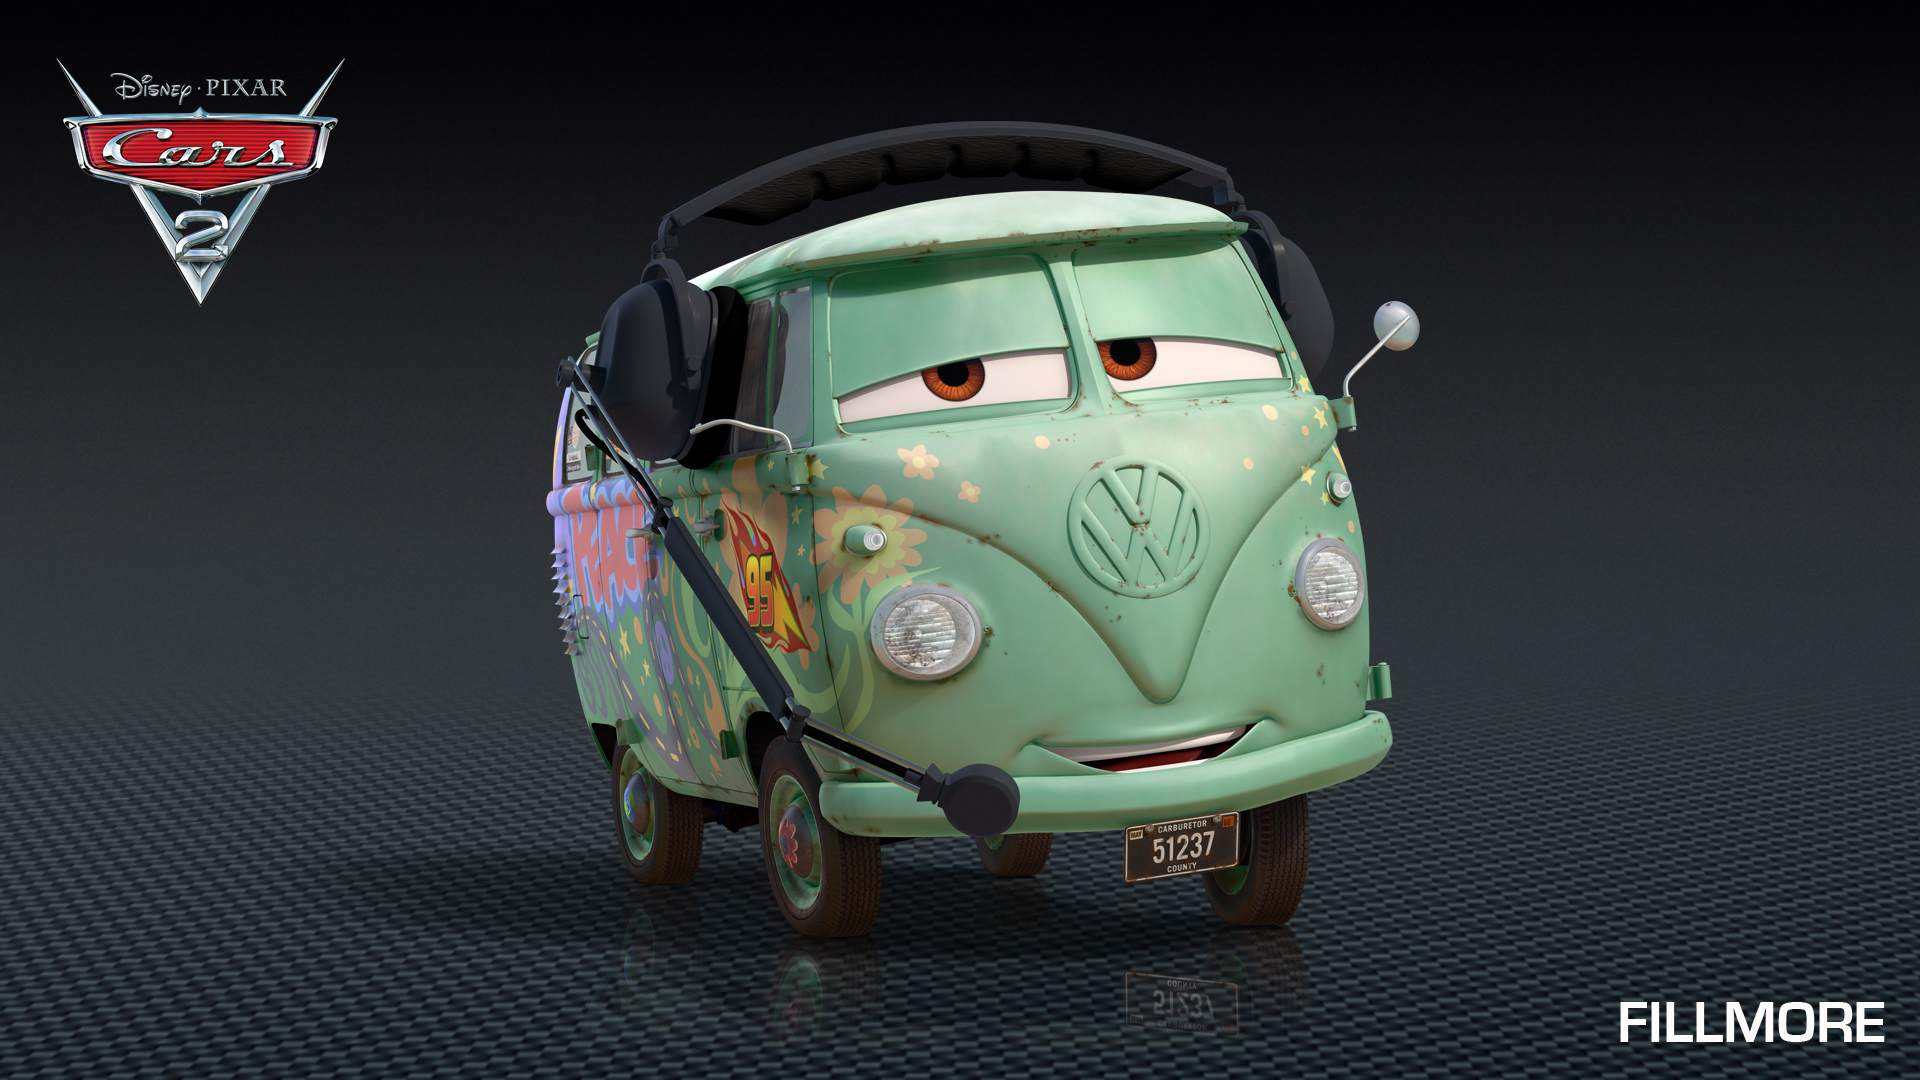 Fillmore A Character In Cars 2 Is Voiced By Lloyd Sherr